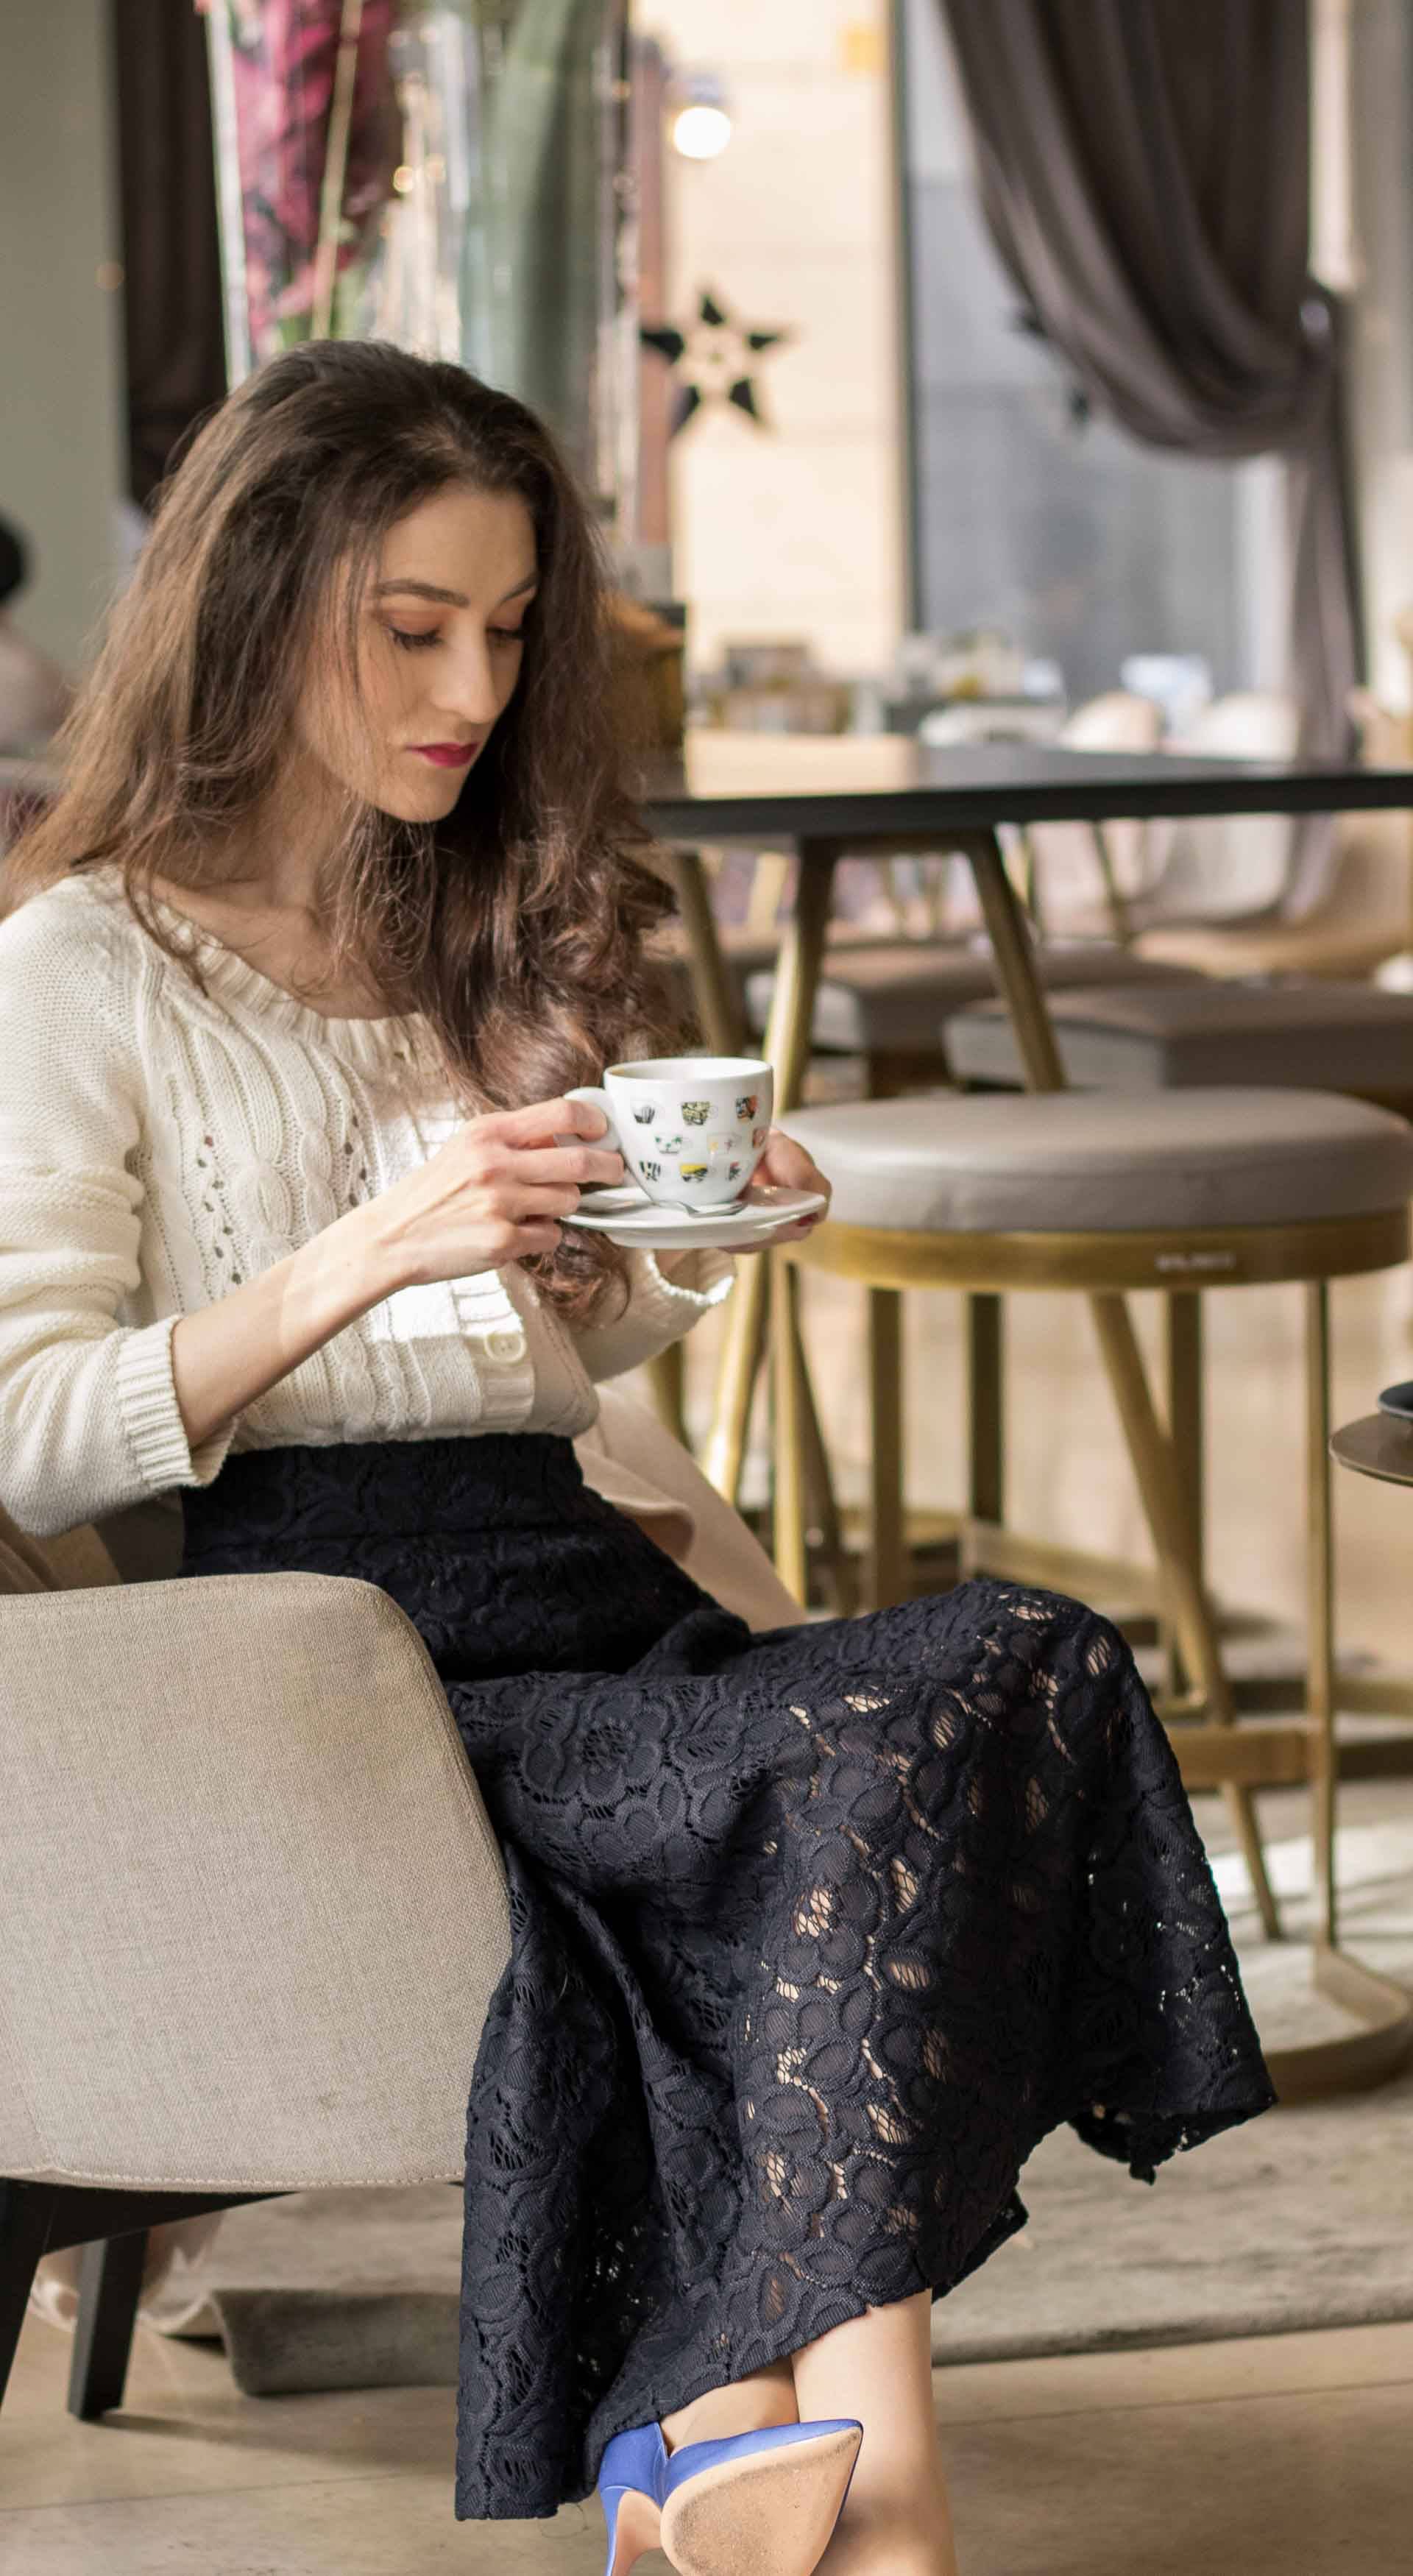 Beautiful Slovenian Fashion Blogger Veronika Lipar of Brunette from Wall dressed in white Mango cardigan etude into black lace midi skirt, blue Gianvito Rossi pumps for fall Sunday brunch holding cup of tea